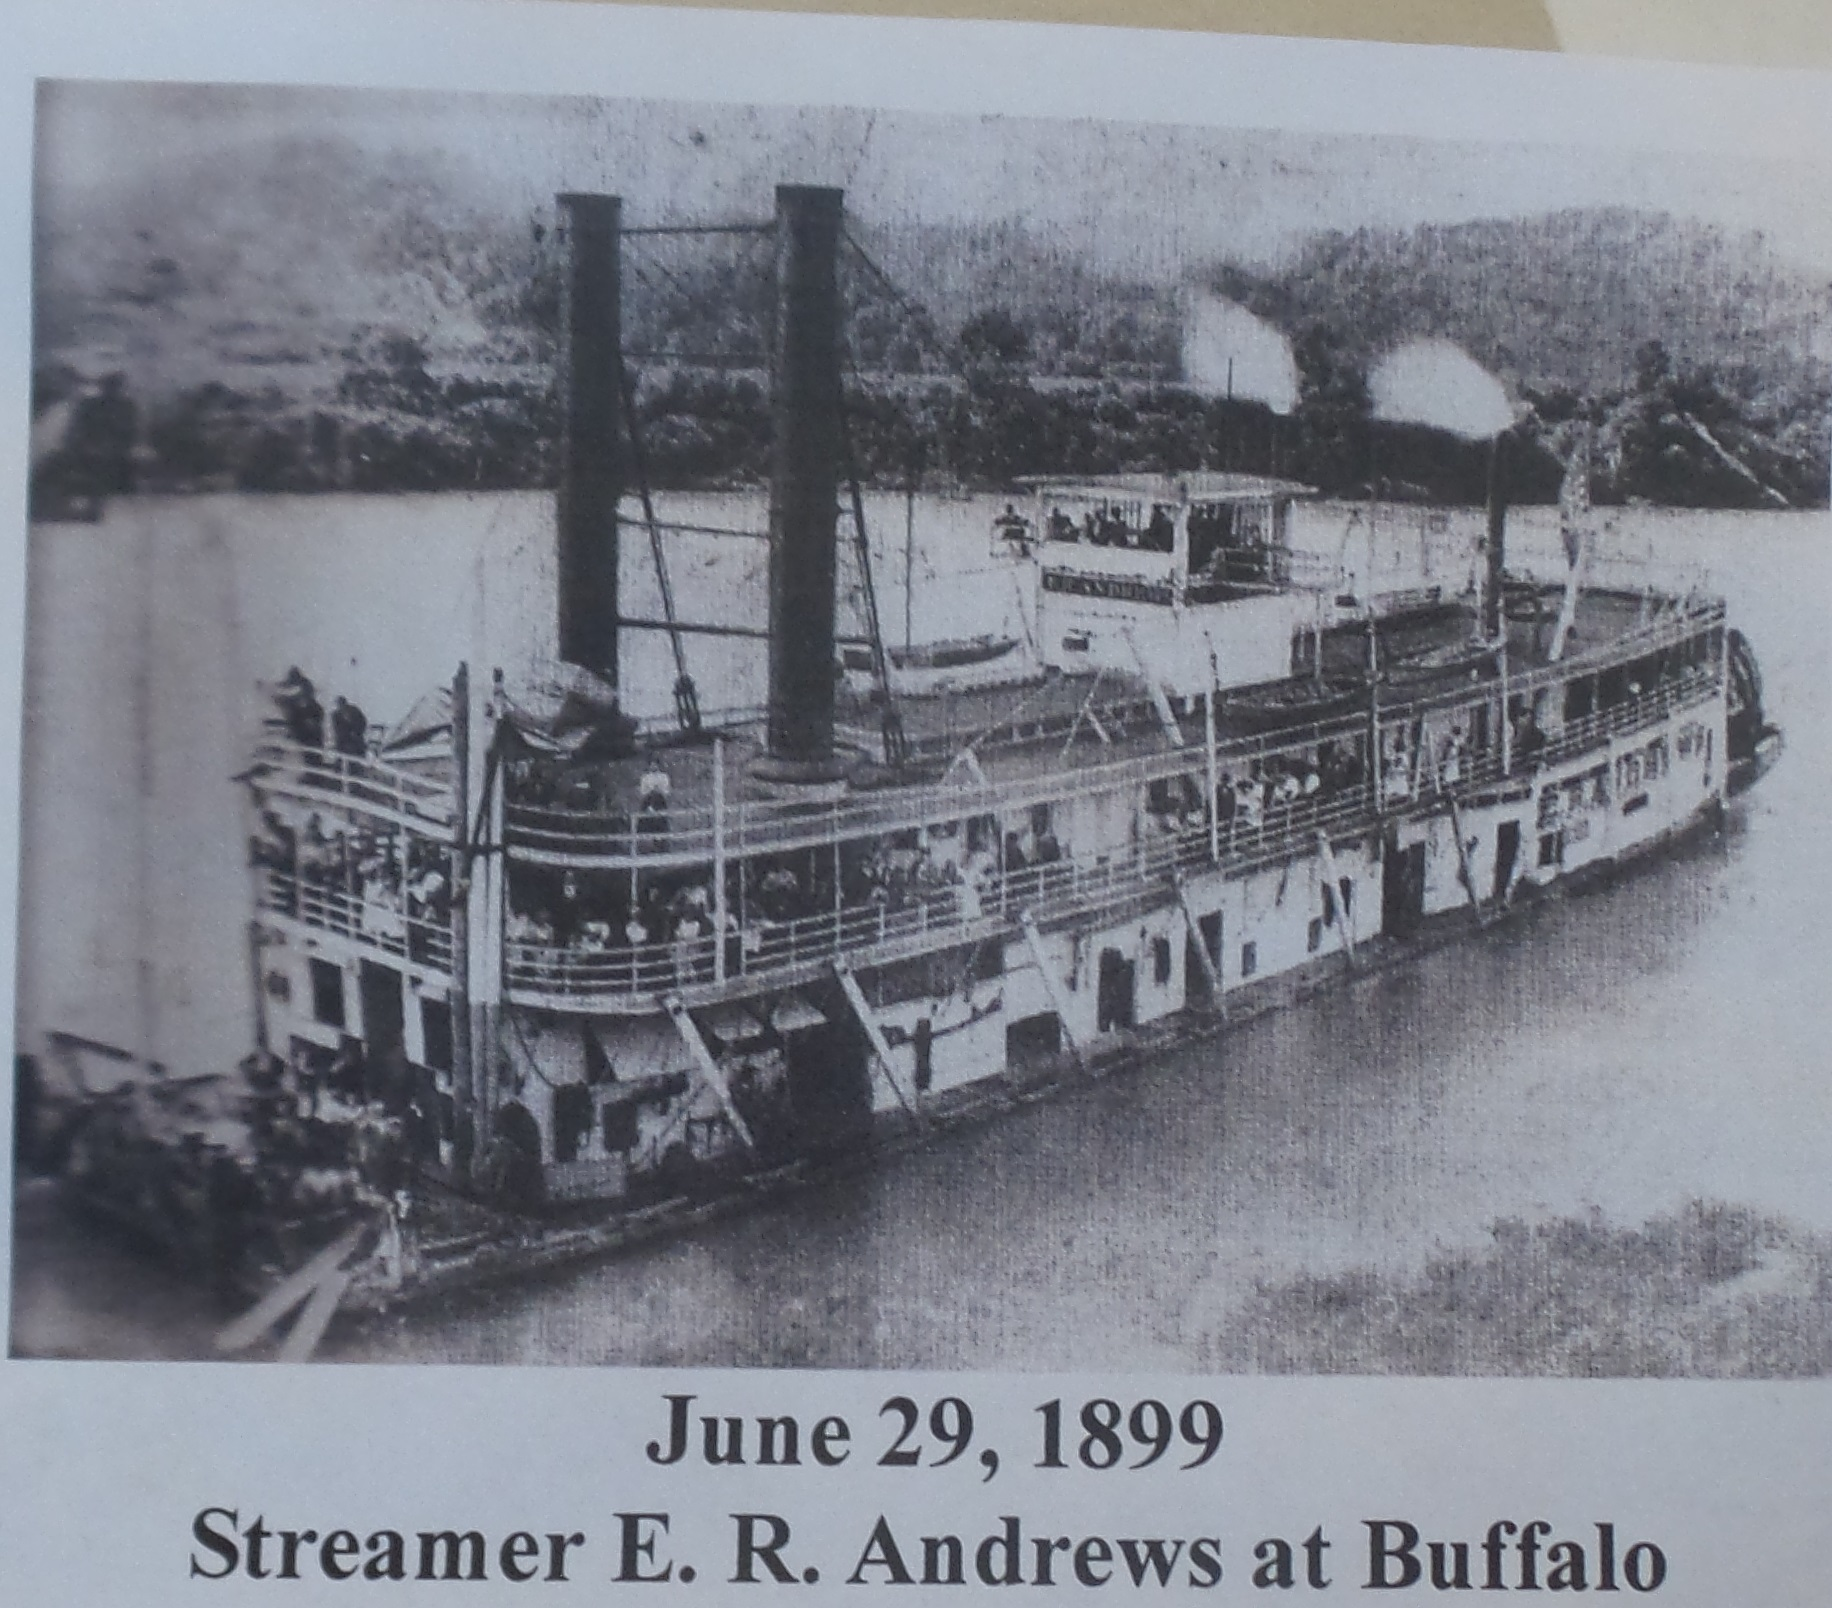 Steam boat E. R. Andrews